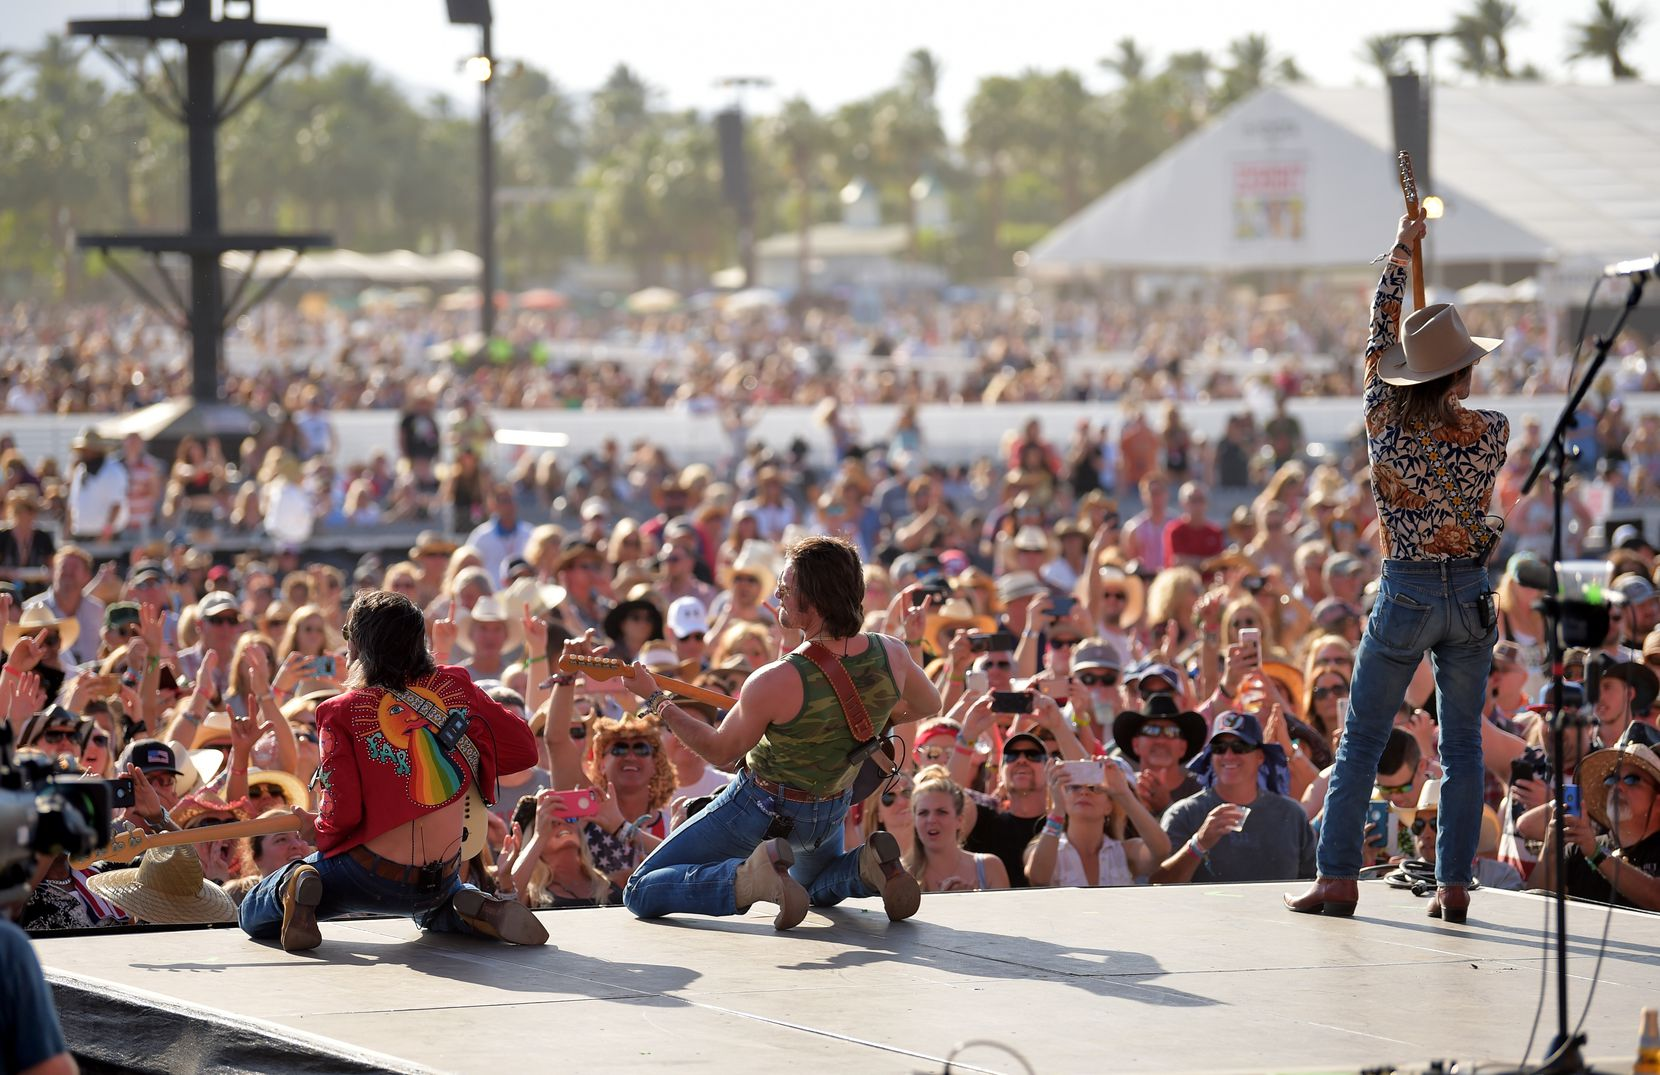 Cameron Duddy, Mark Wystrach and Jess Carson of Midland perform during the 2018 Stagecoach California's Country Music Festival at the Empire Polo Field on April 28, 2018 in Indio, Calif.